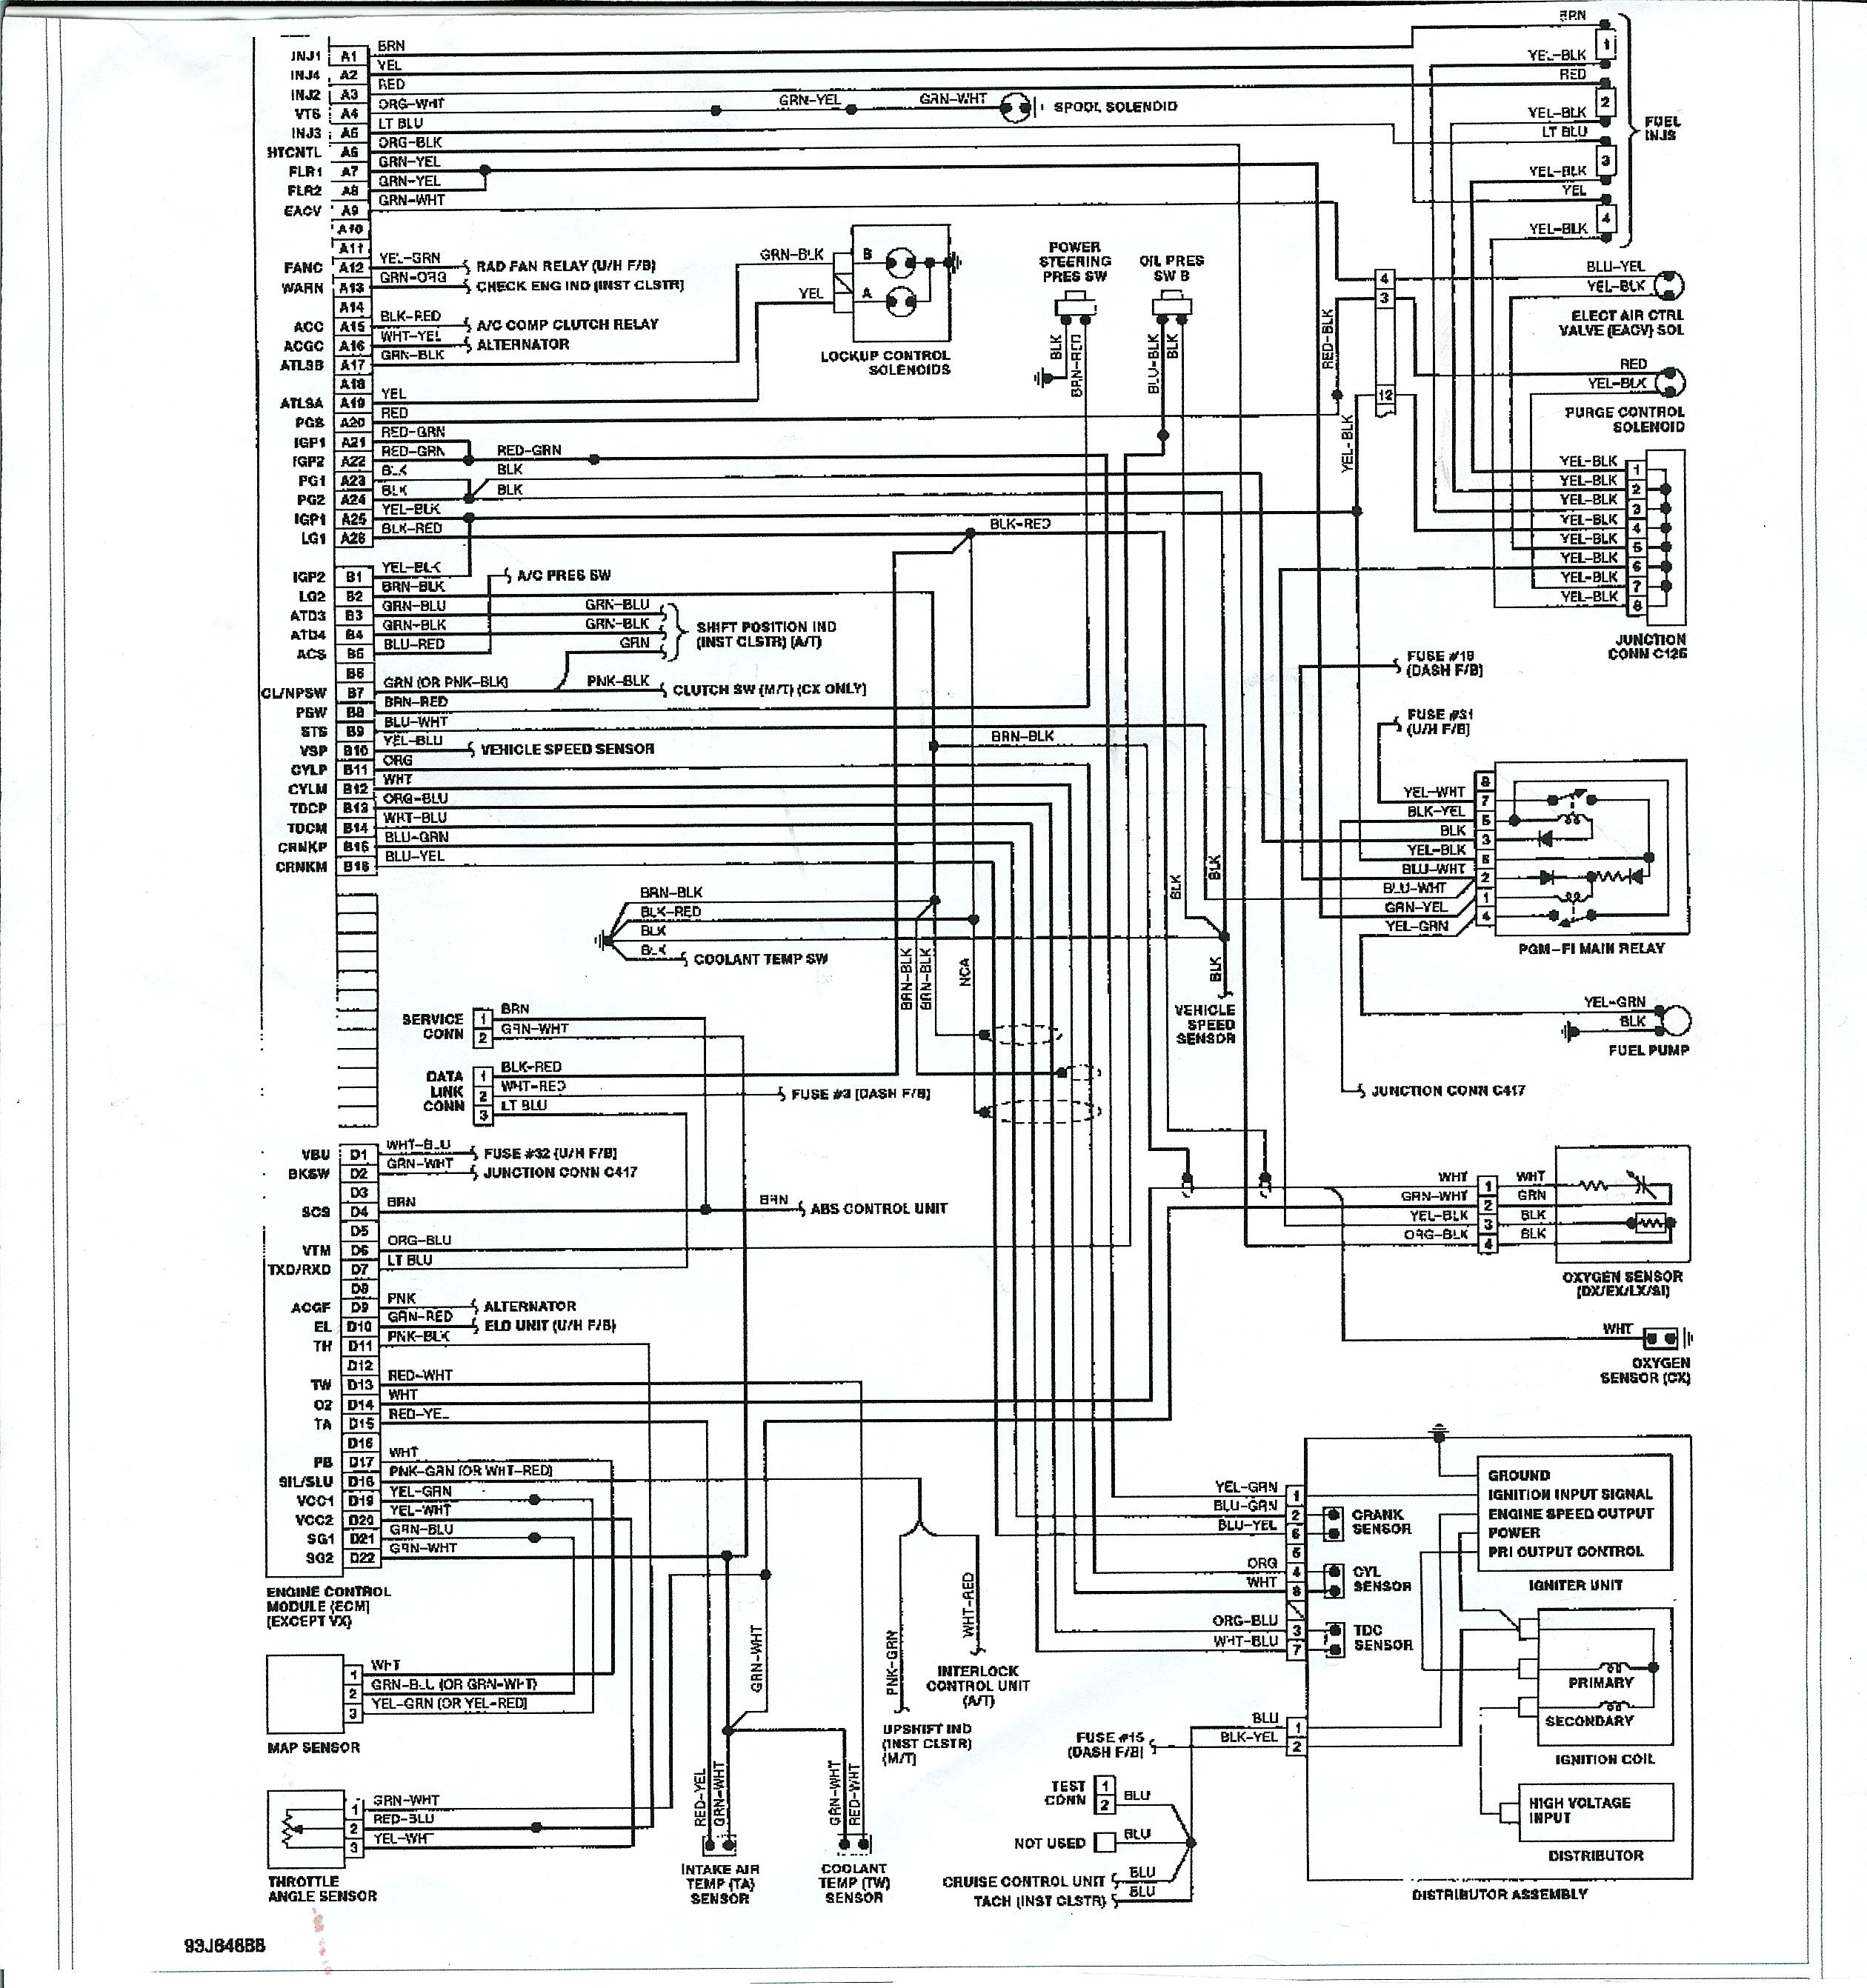 403660d1445082998 integra tcm wiring schematic auto swap dxecu diagrams 10001383 1994 acura integra wiring diagram 1996 94 Integra GSR at mifinder.co